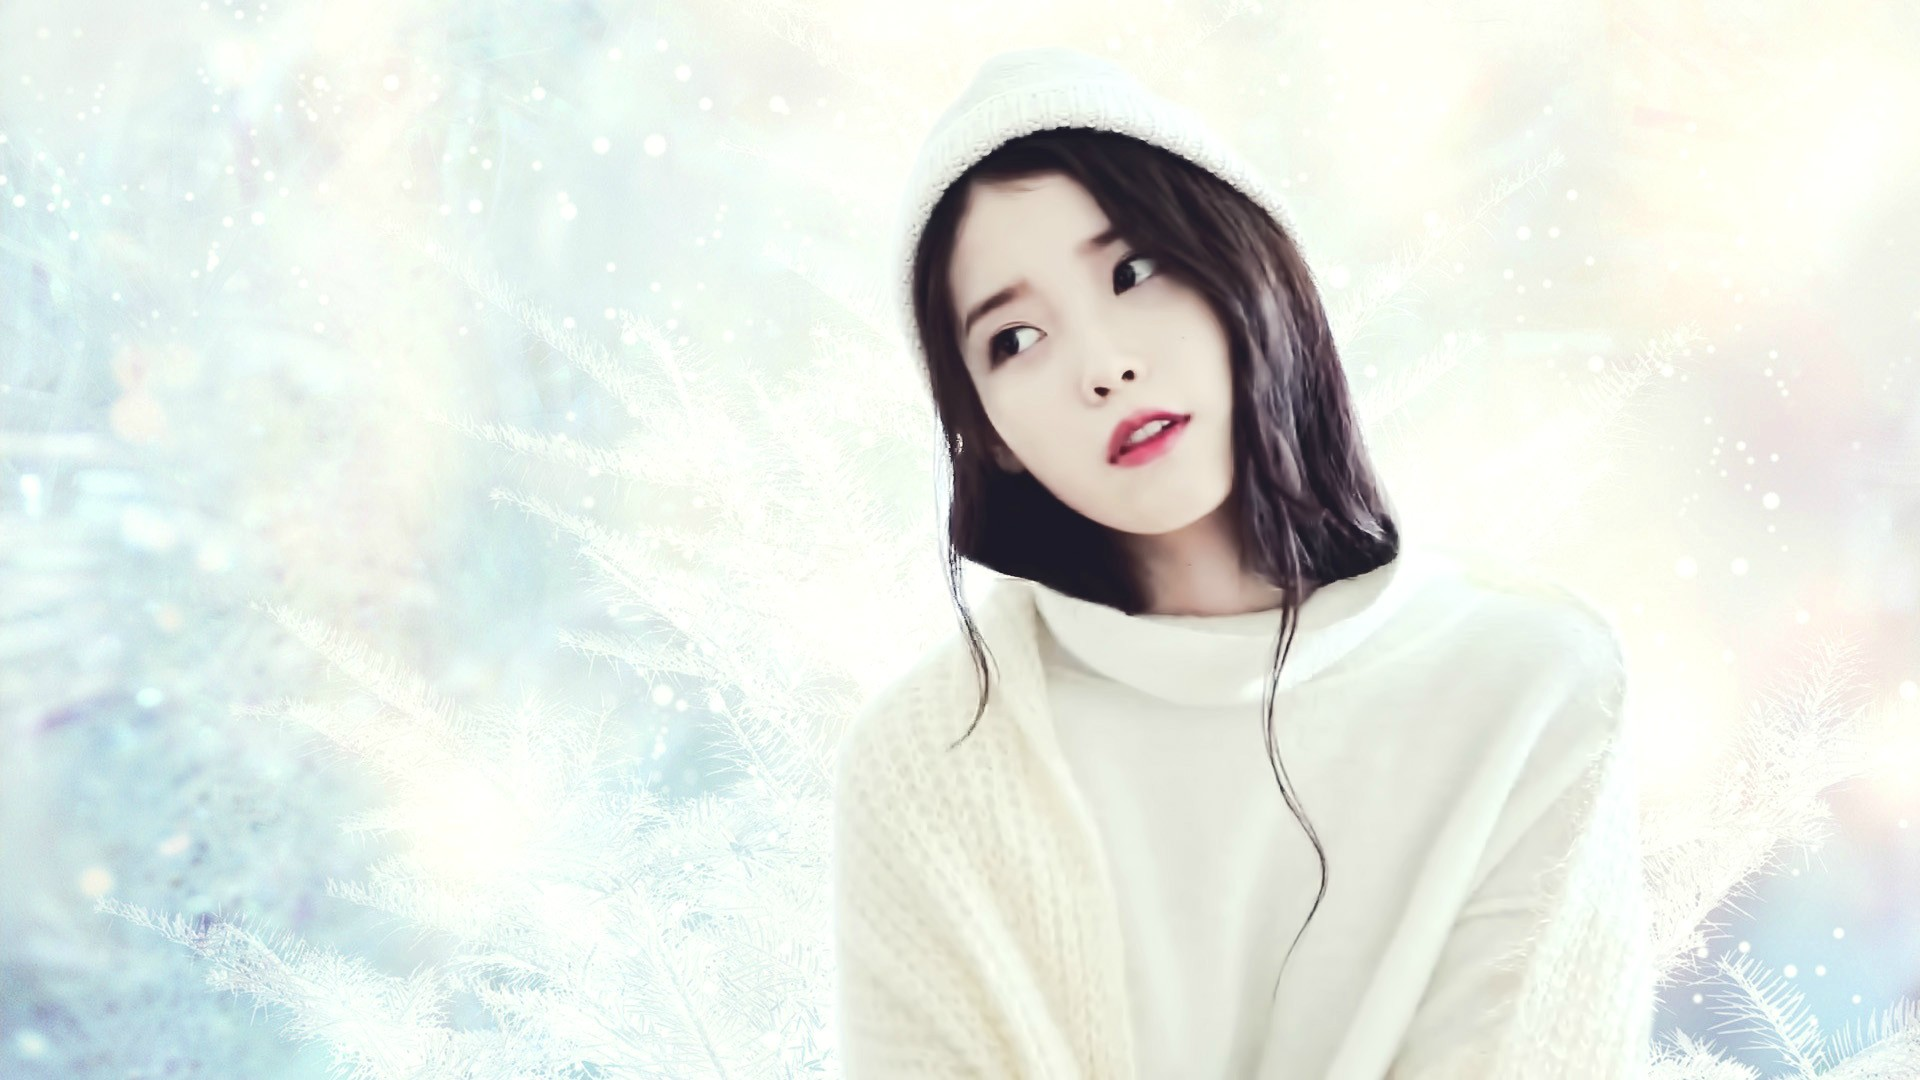 iu desktop wallpaper 1920x1080 iu wallpaper 39096390